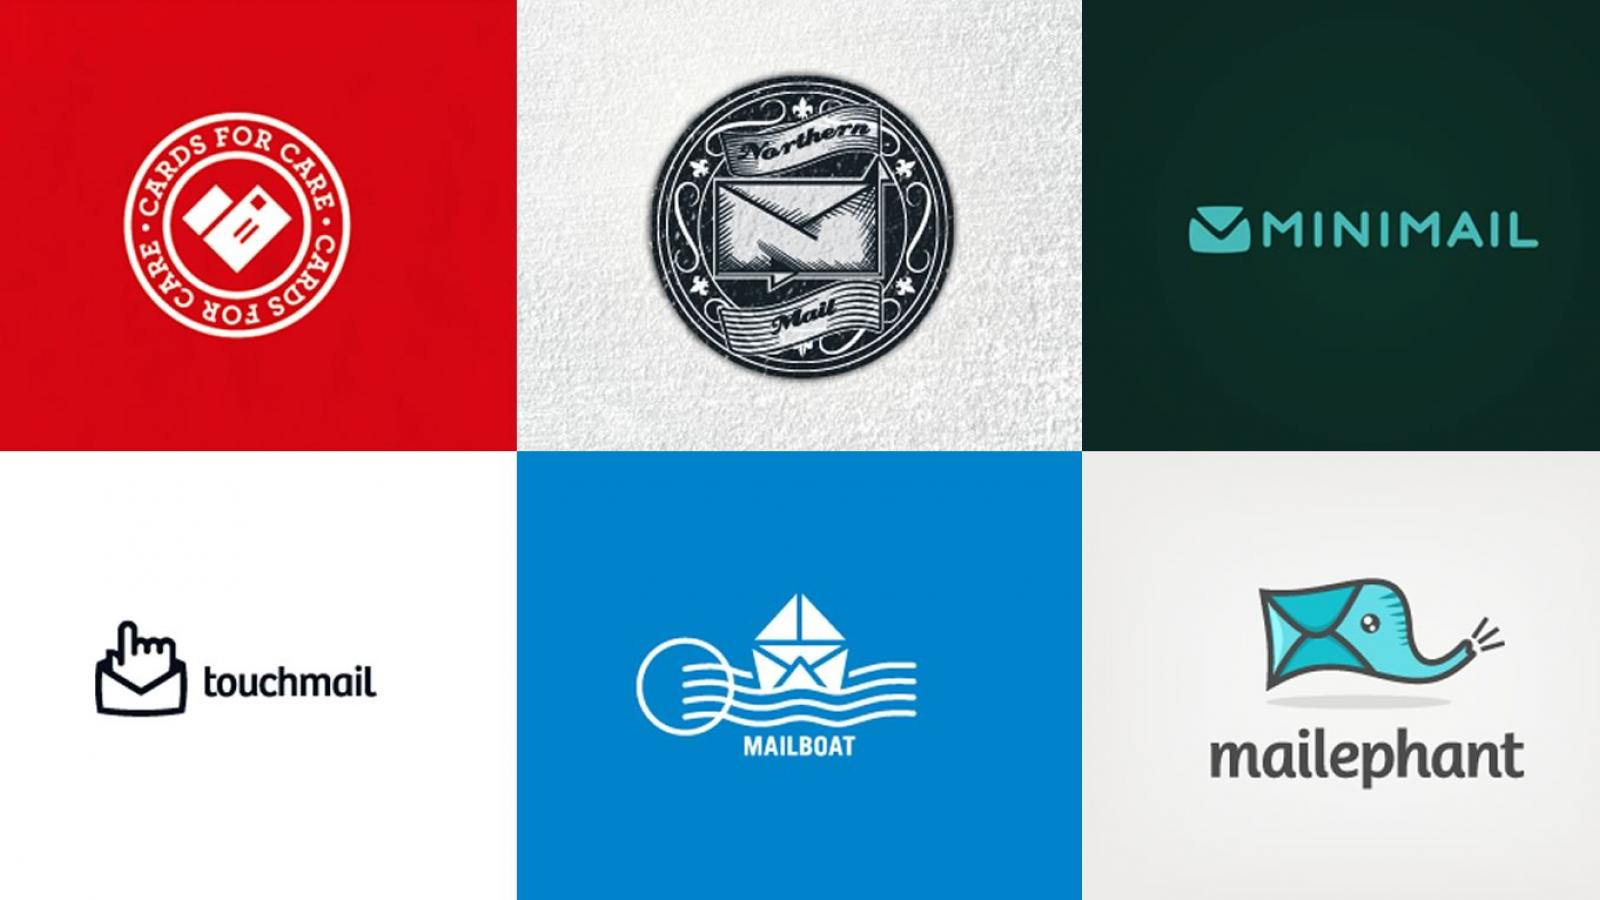 Logo Design: Mail